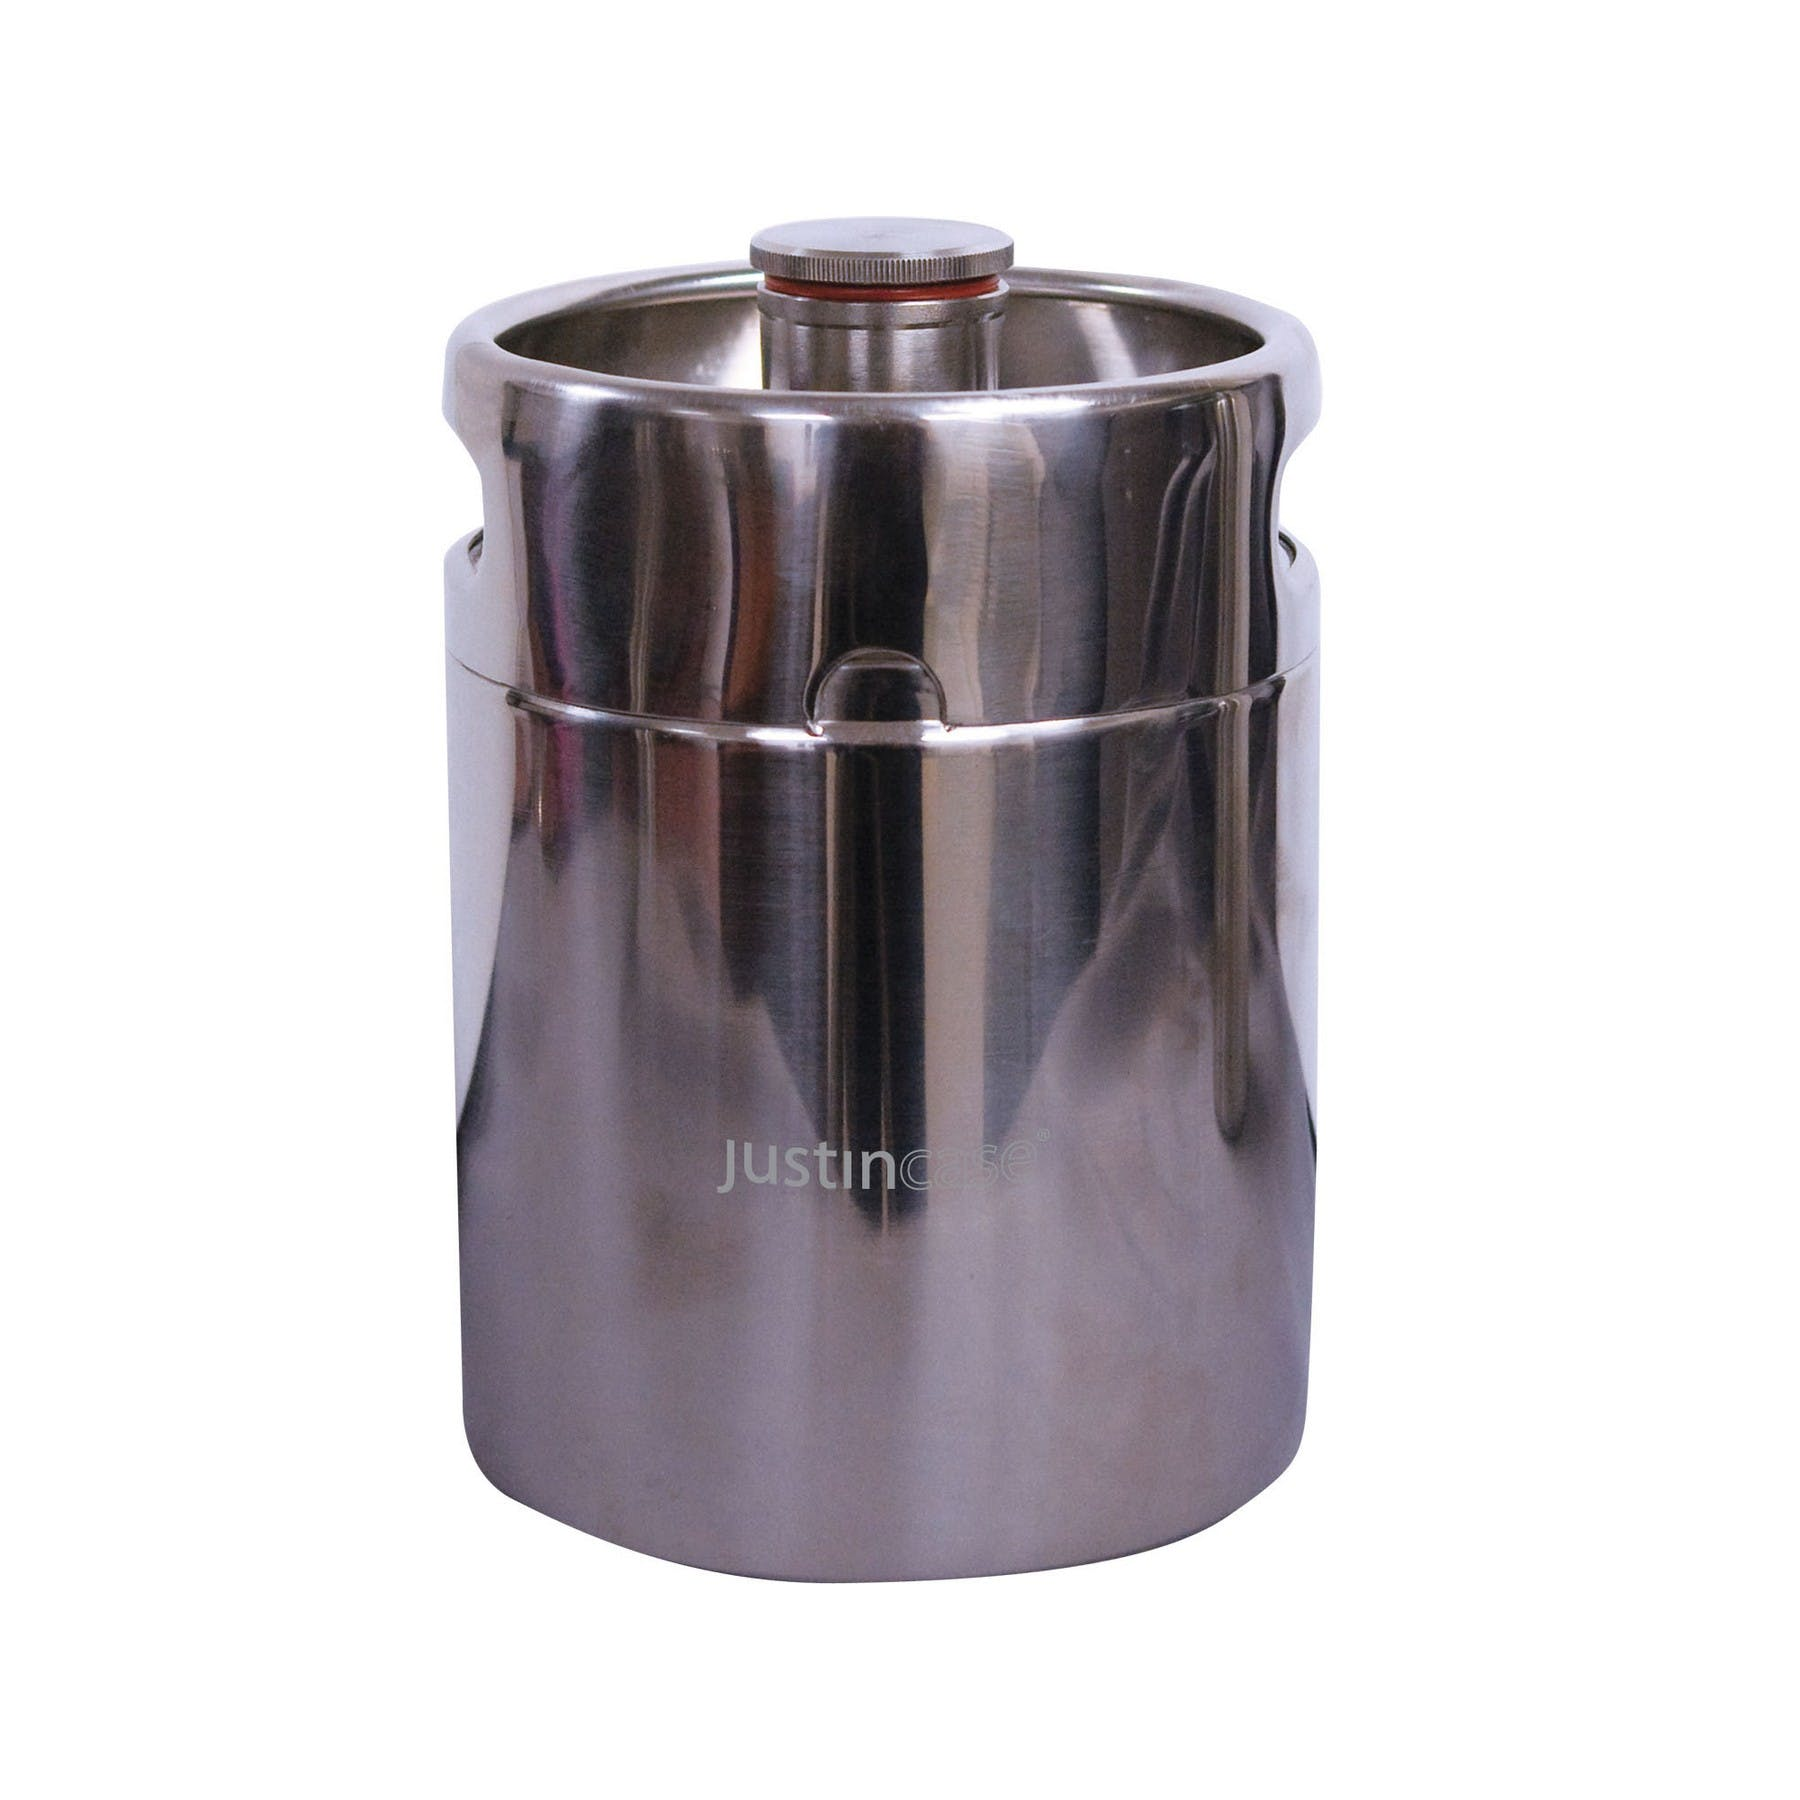 Stainless Steel Mini-Keg Growler (Item # MIEJT-KAQTI) Growler sold by InkEasy